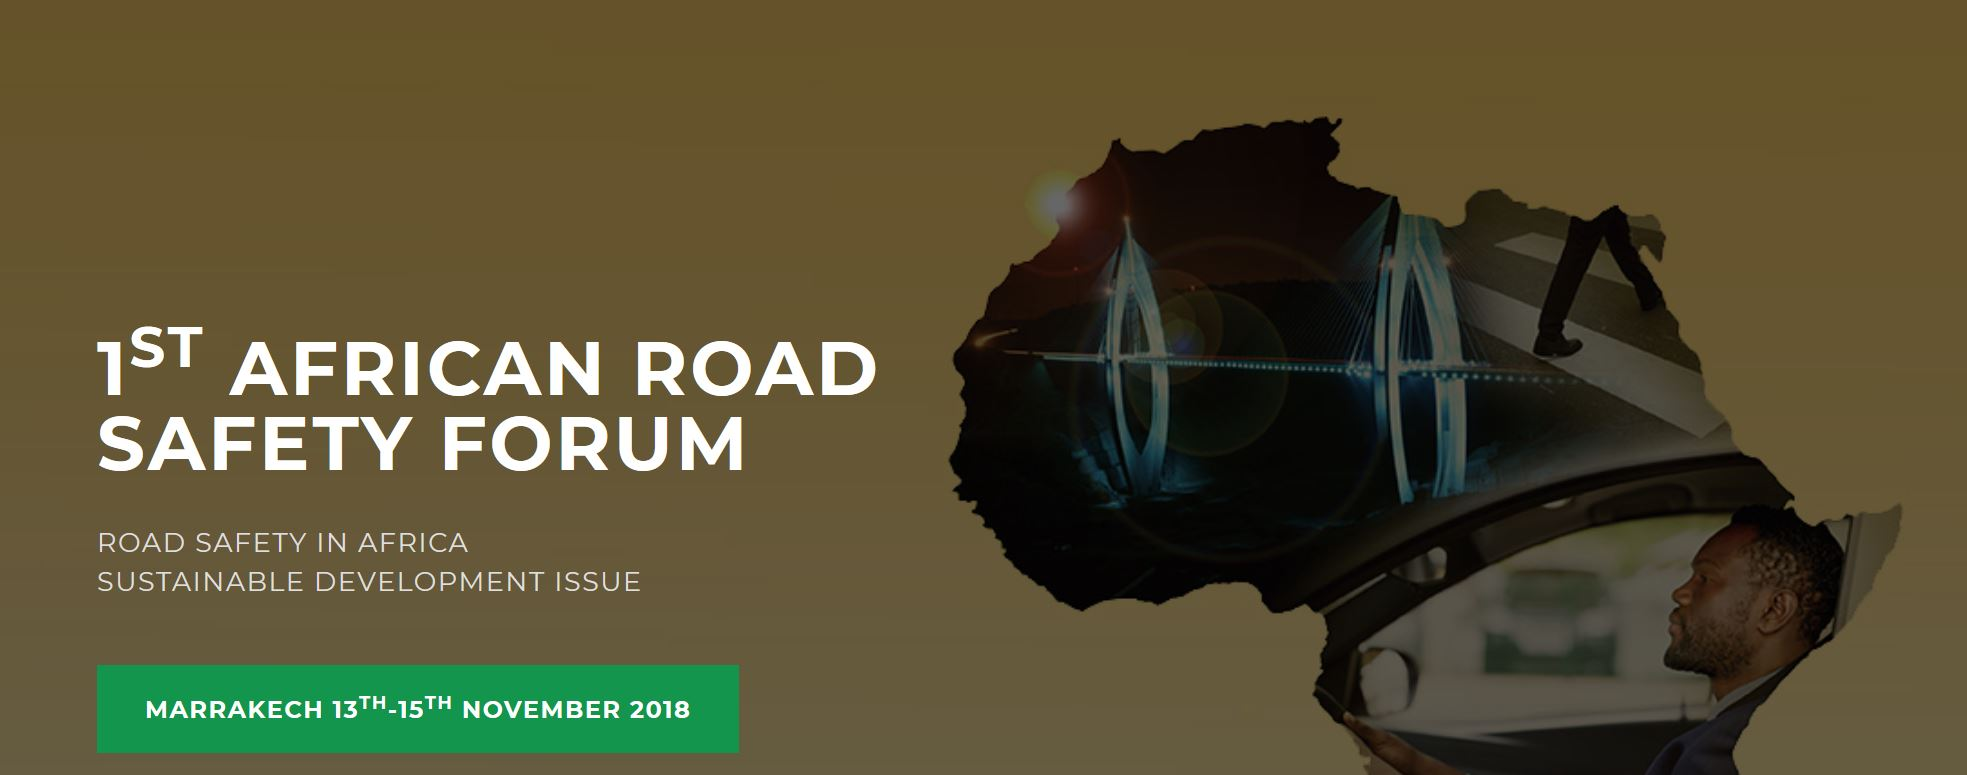 1st African Road Safety Forum to held in Morocco